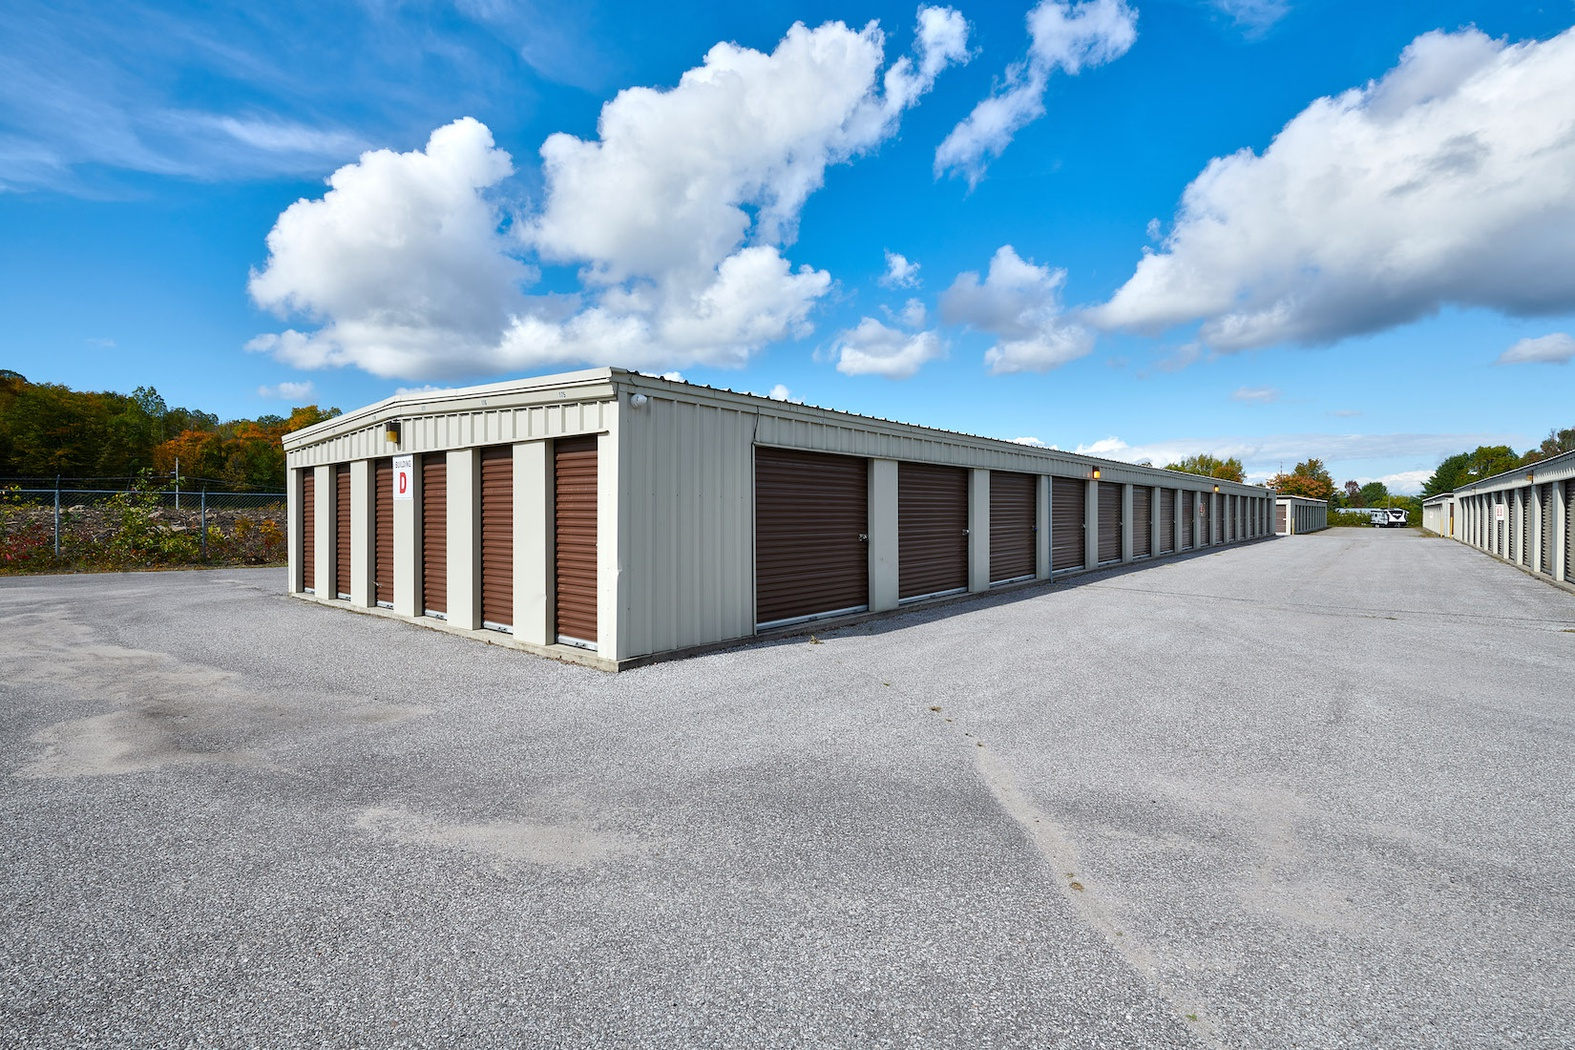 Rent Bowmanville storage units at 1084 Haines Street. We offer a wide-range of affordable self storage units and your first 4 weeks are free!